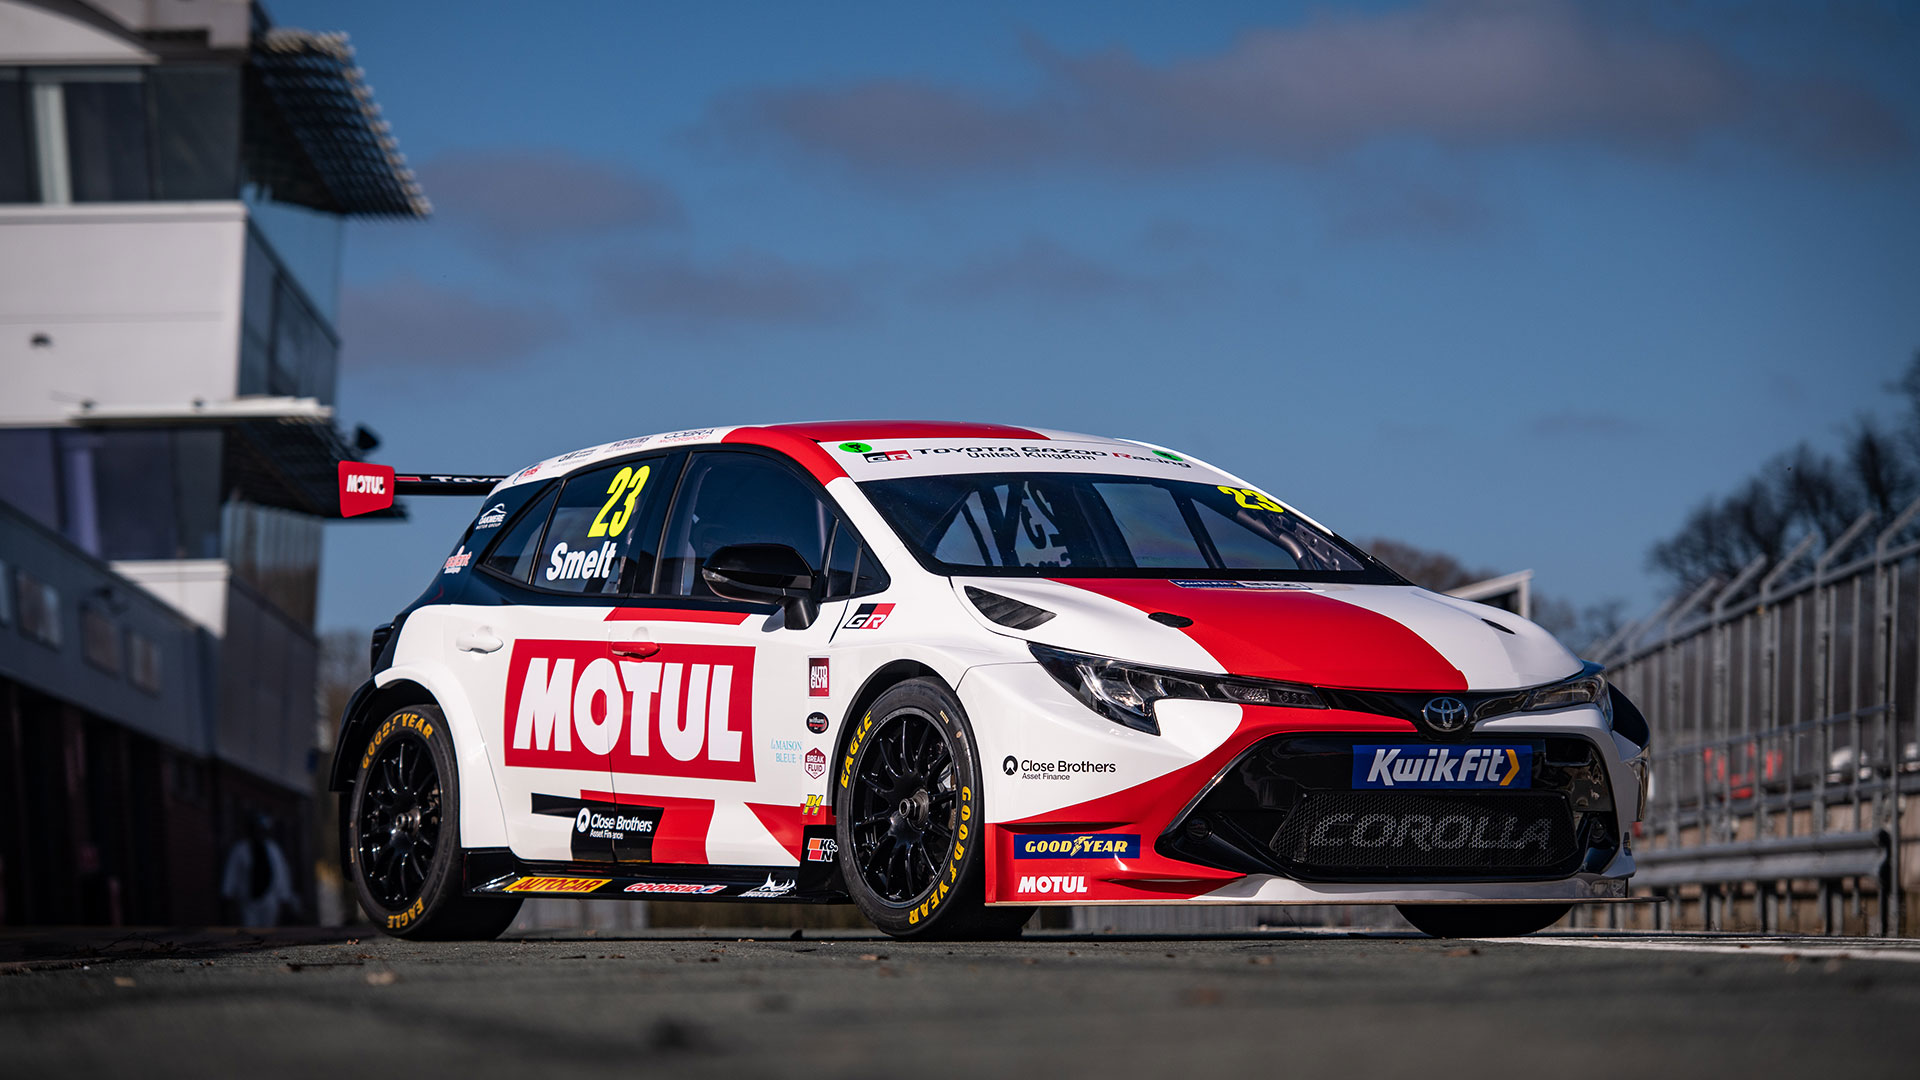 The Toyota Corolla Hatch With New Liveries - Front Alternative Angle